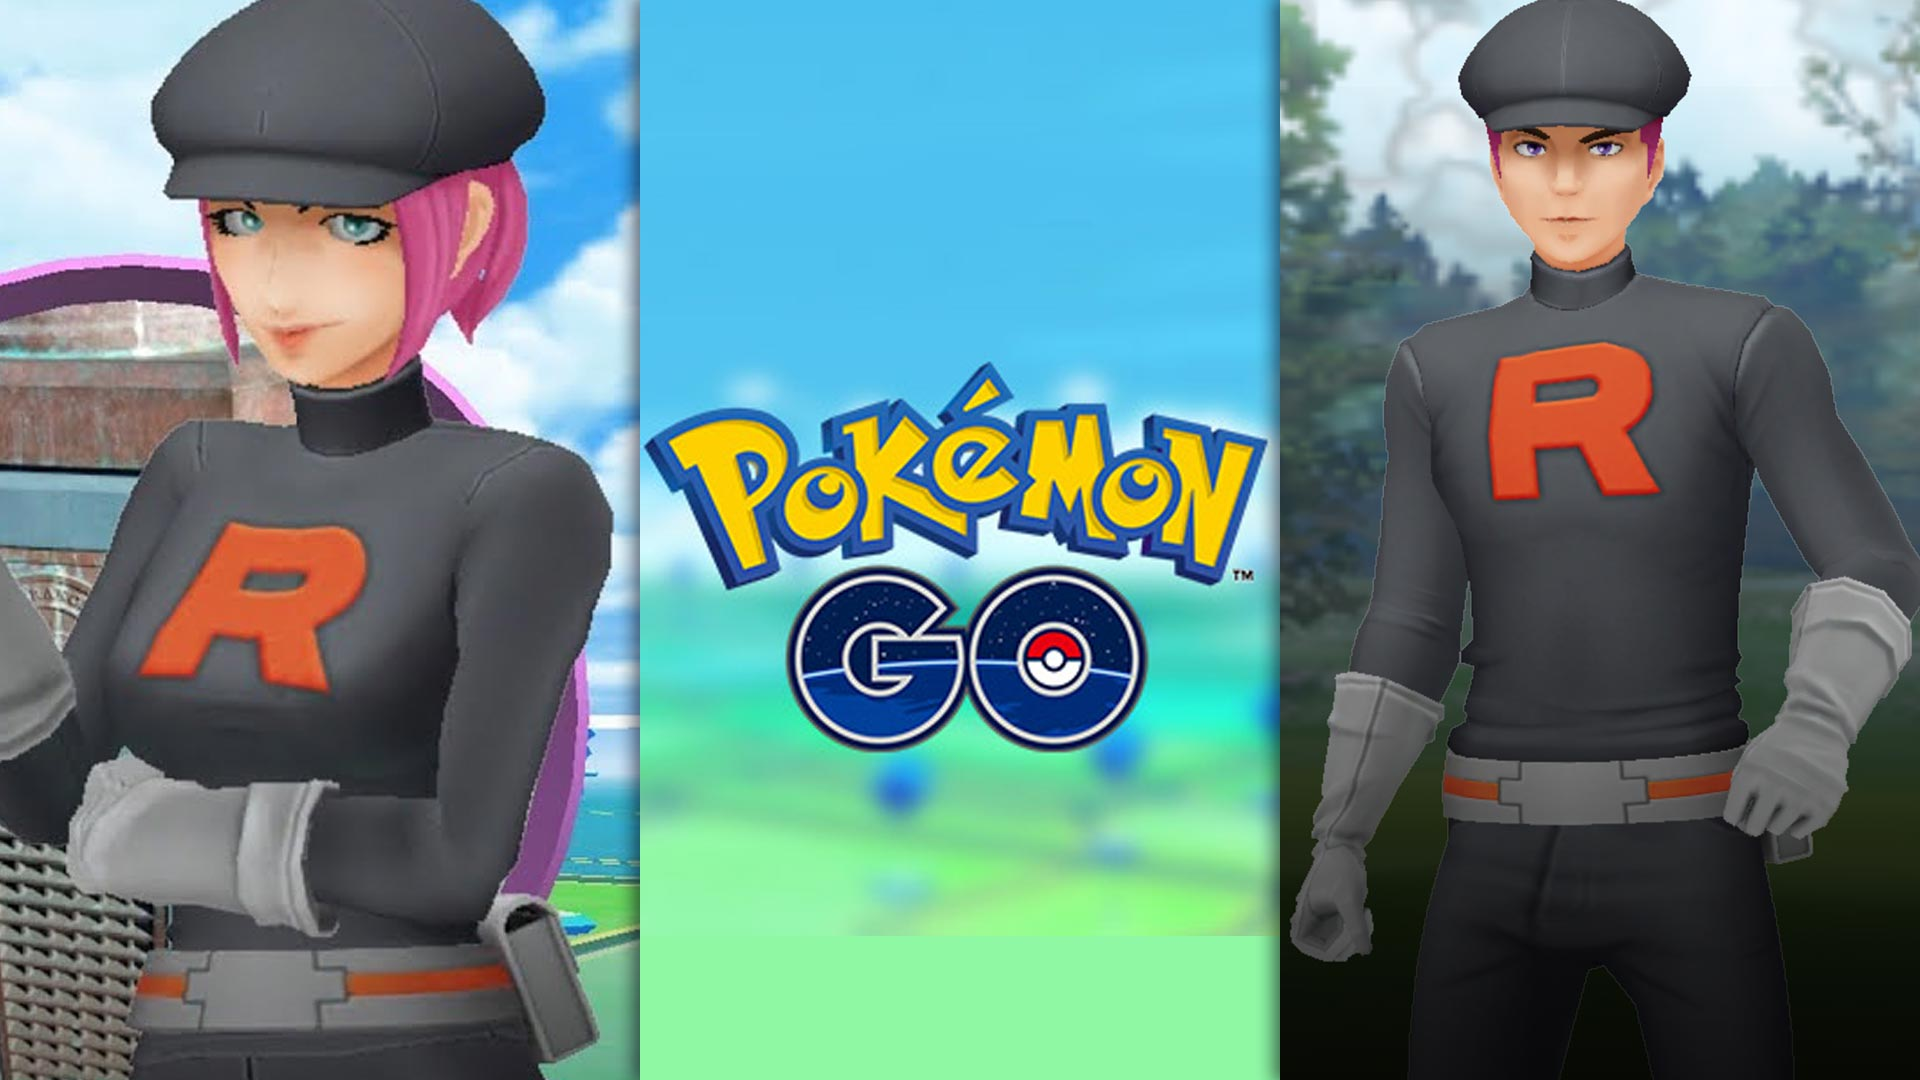 team rocket pokemon go